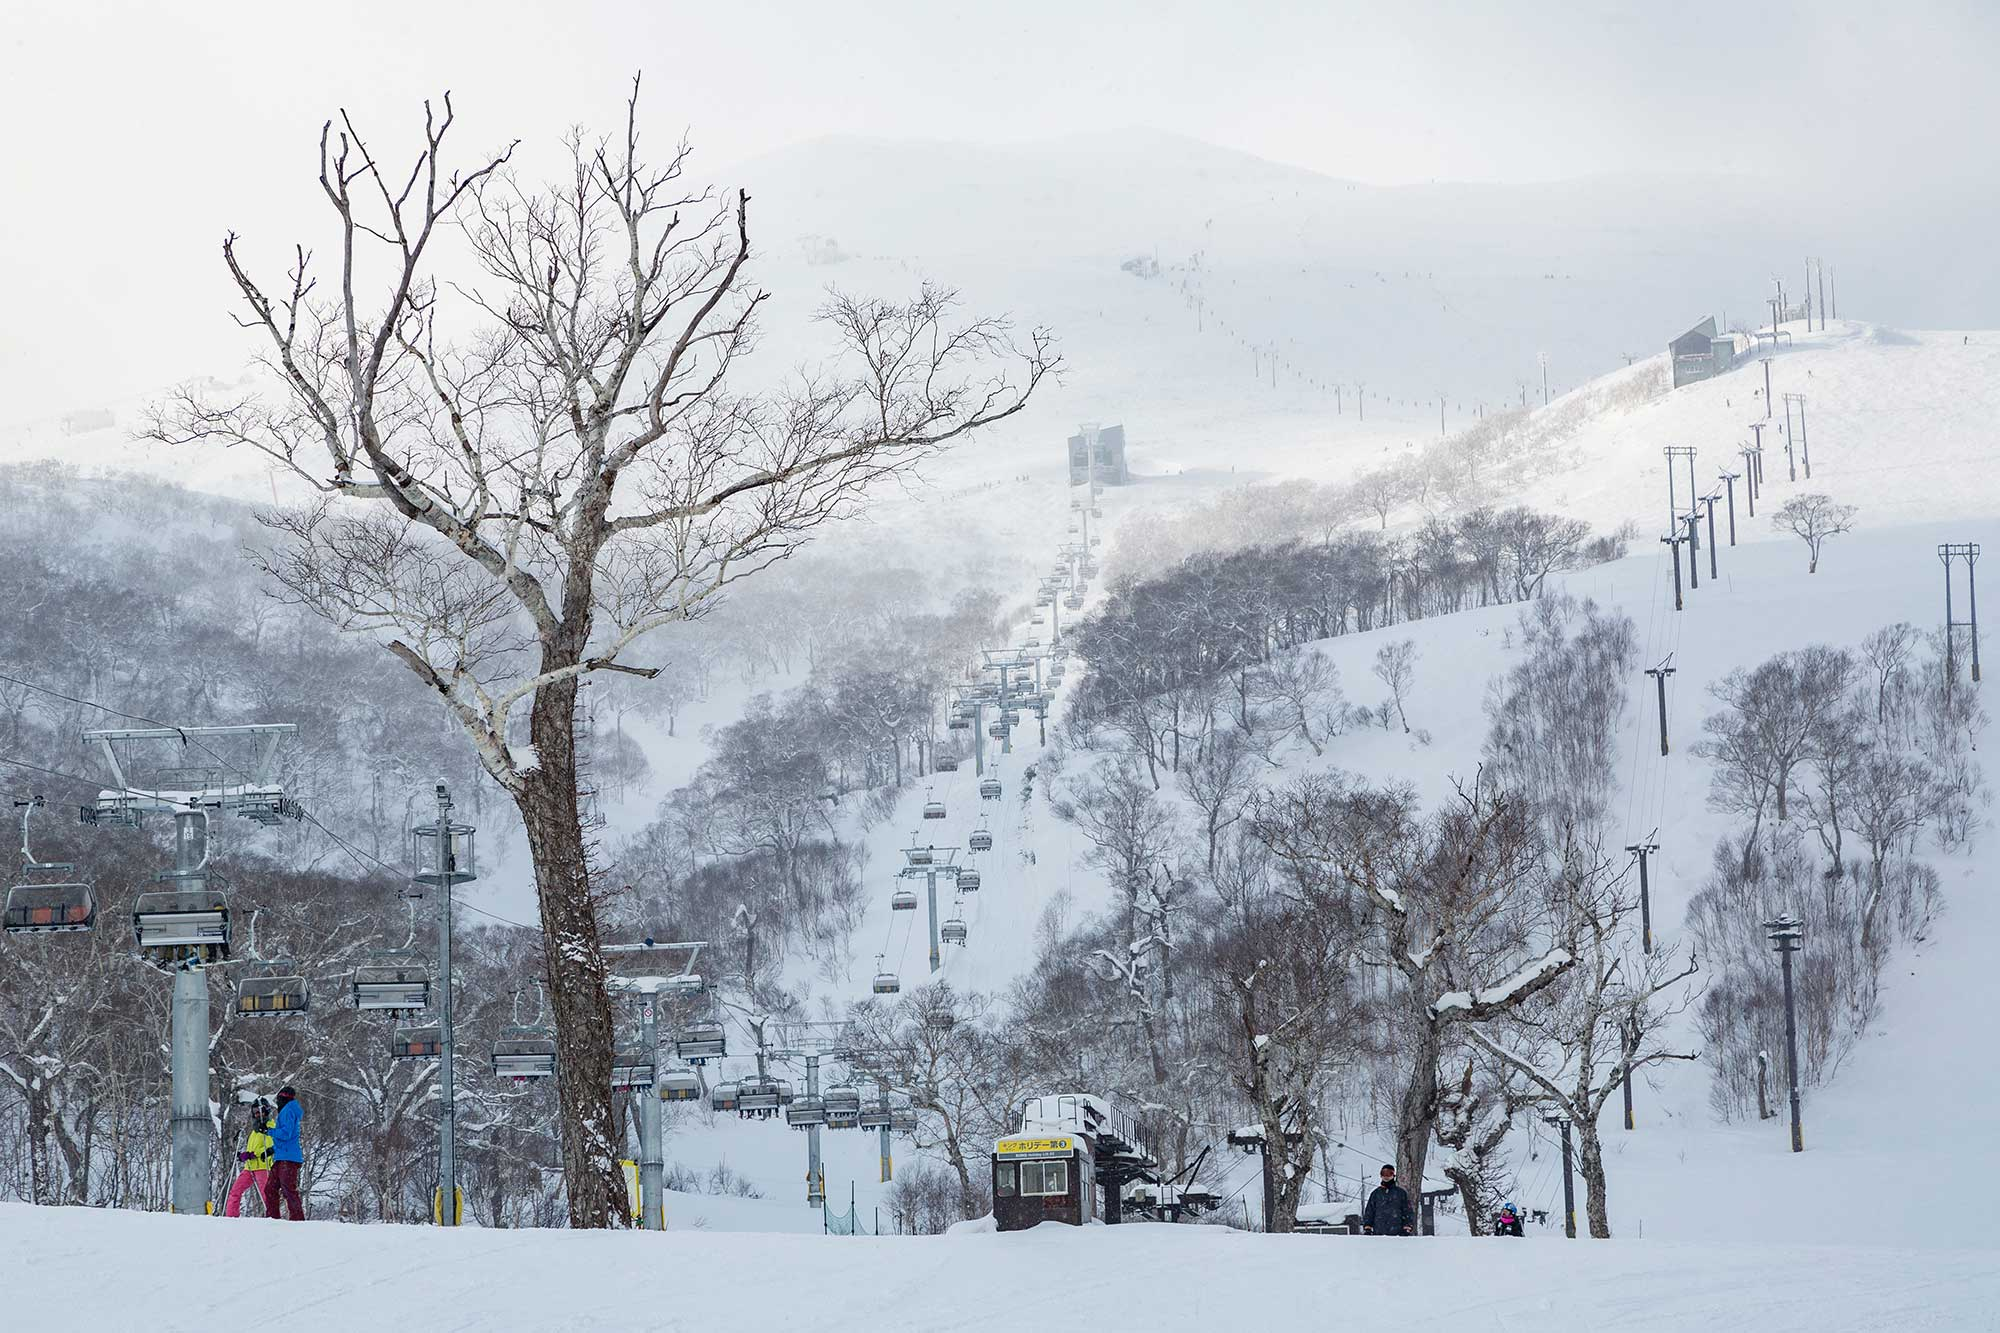 View towards gondolas and chair lifts going up a very snowy mountain